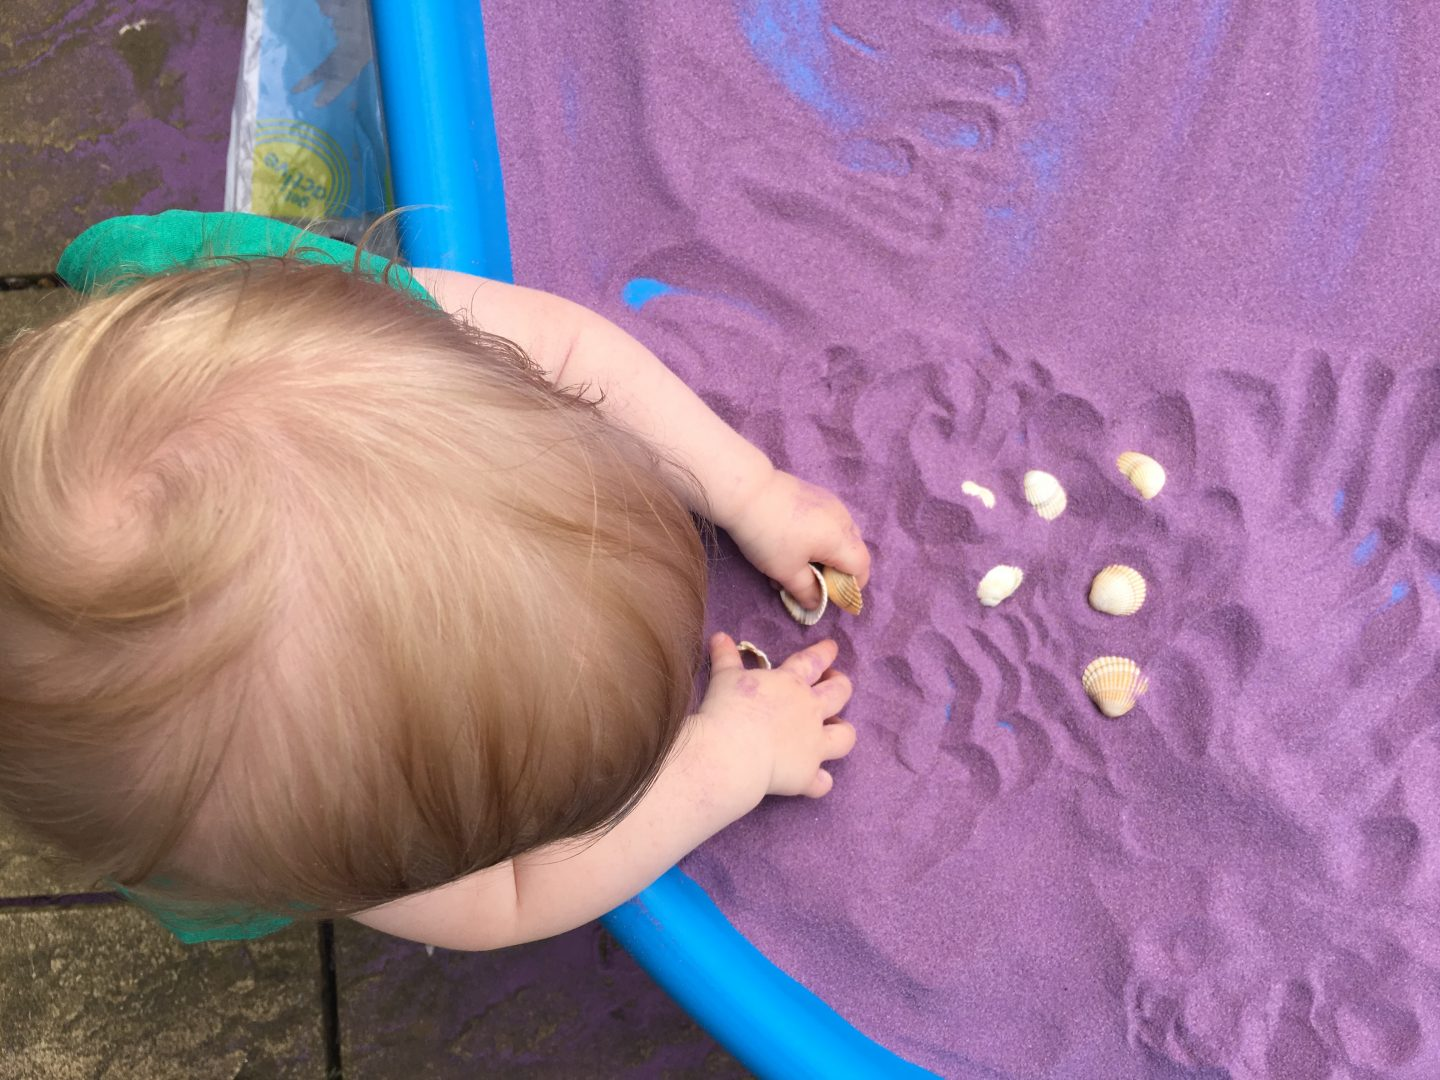 M playing with purple sand